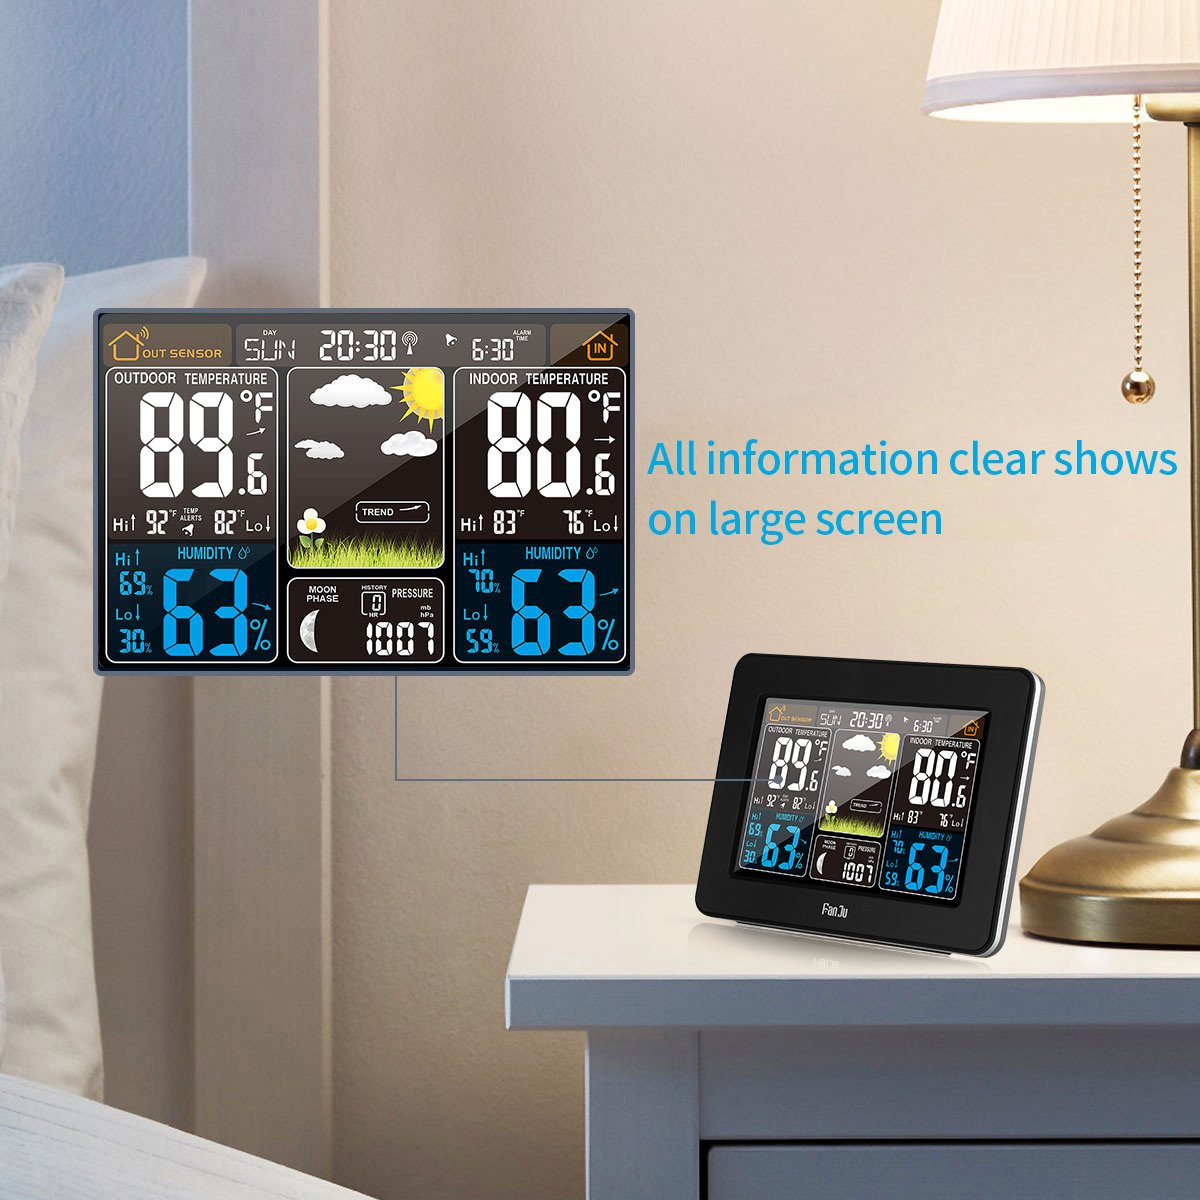 FanJu FJ3365B Digital Color Forecast Weather Station with Alert and Temperature/Humidity/Barometer/Alarm/Moon phase/Weather Clock with Outdoor Sensor by FanJu (Image #3)